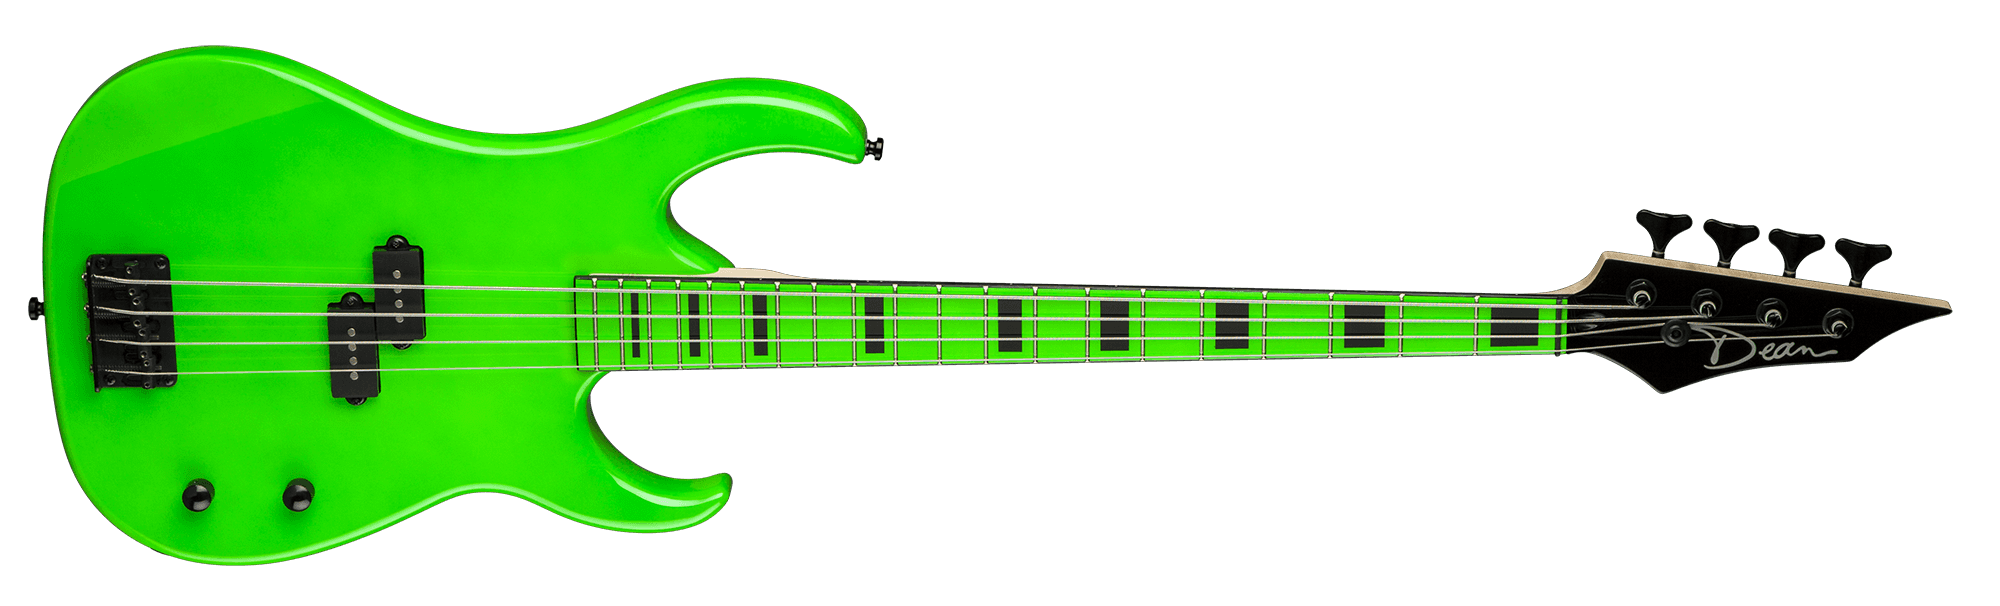 Custom Zone - Nuclear Green